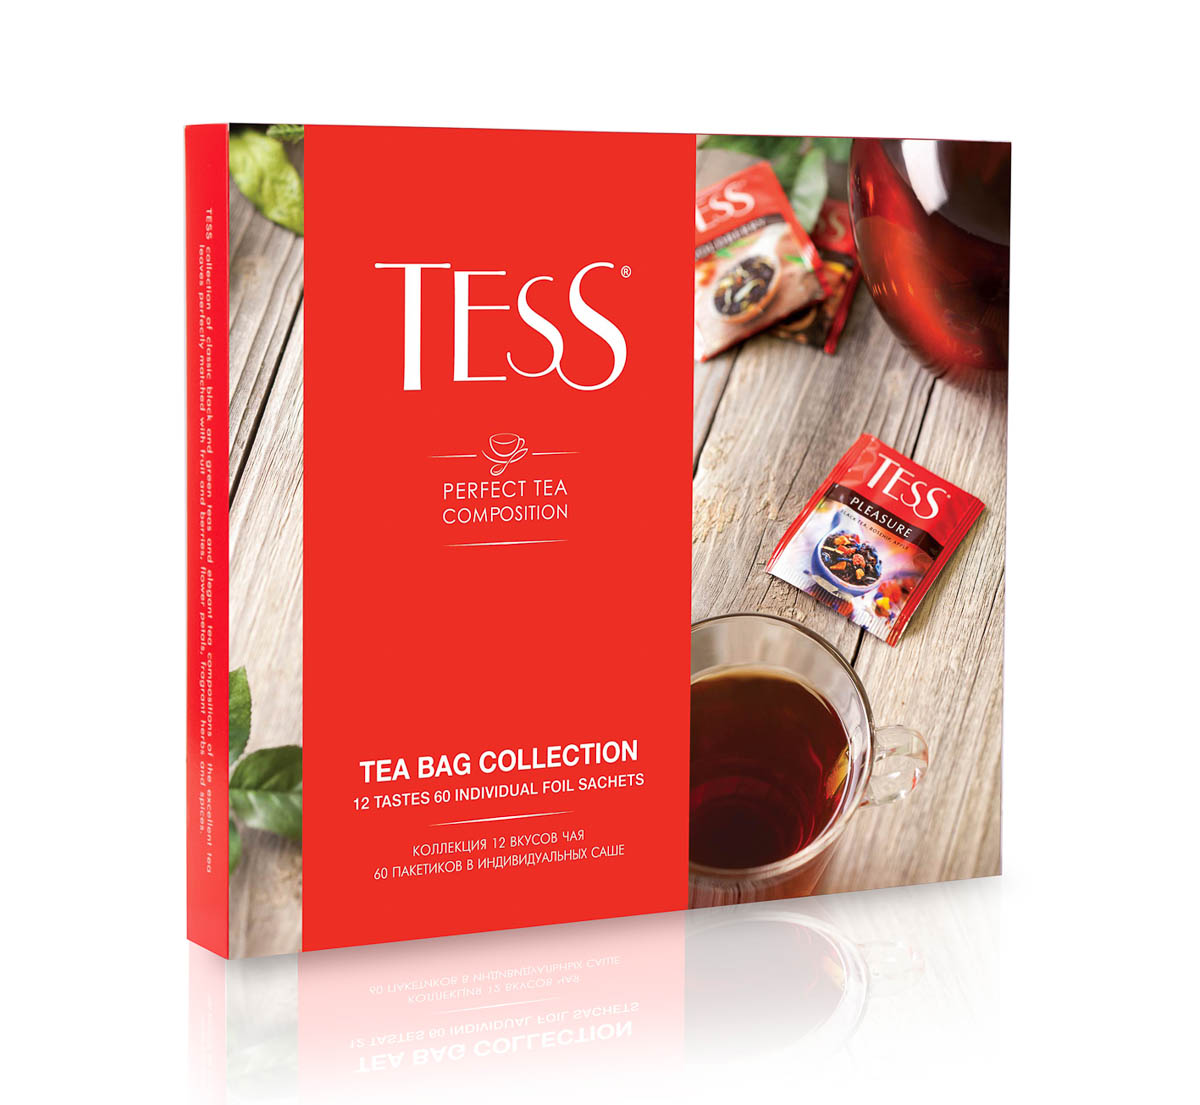 Tess, cofffret d'assortiment de thés